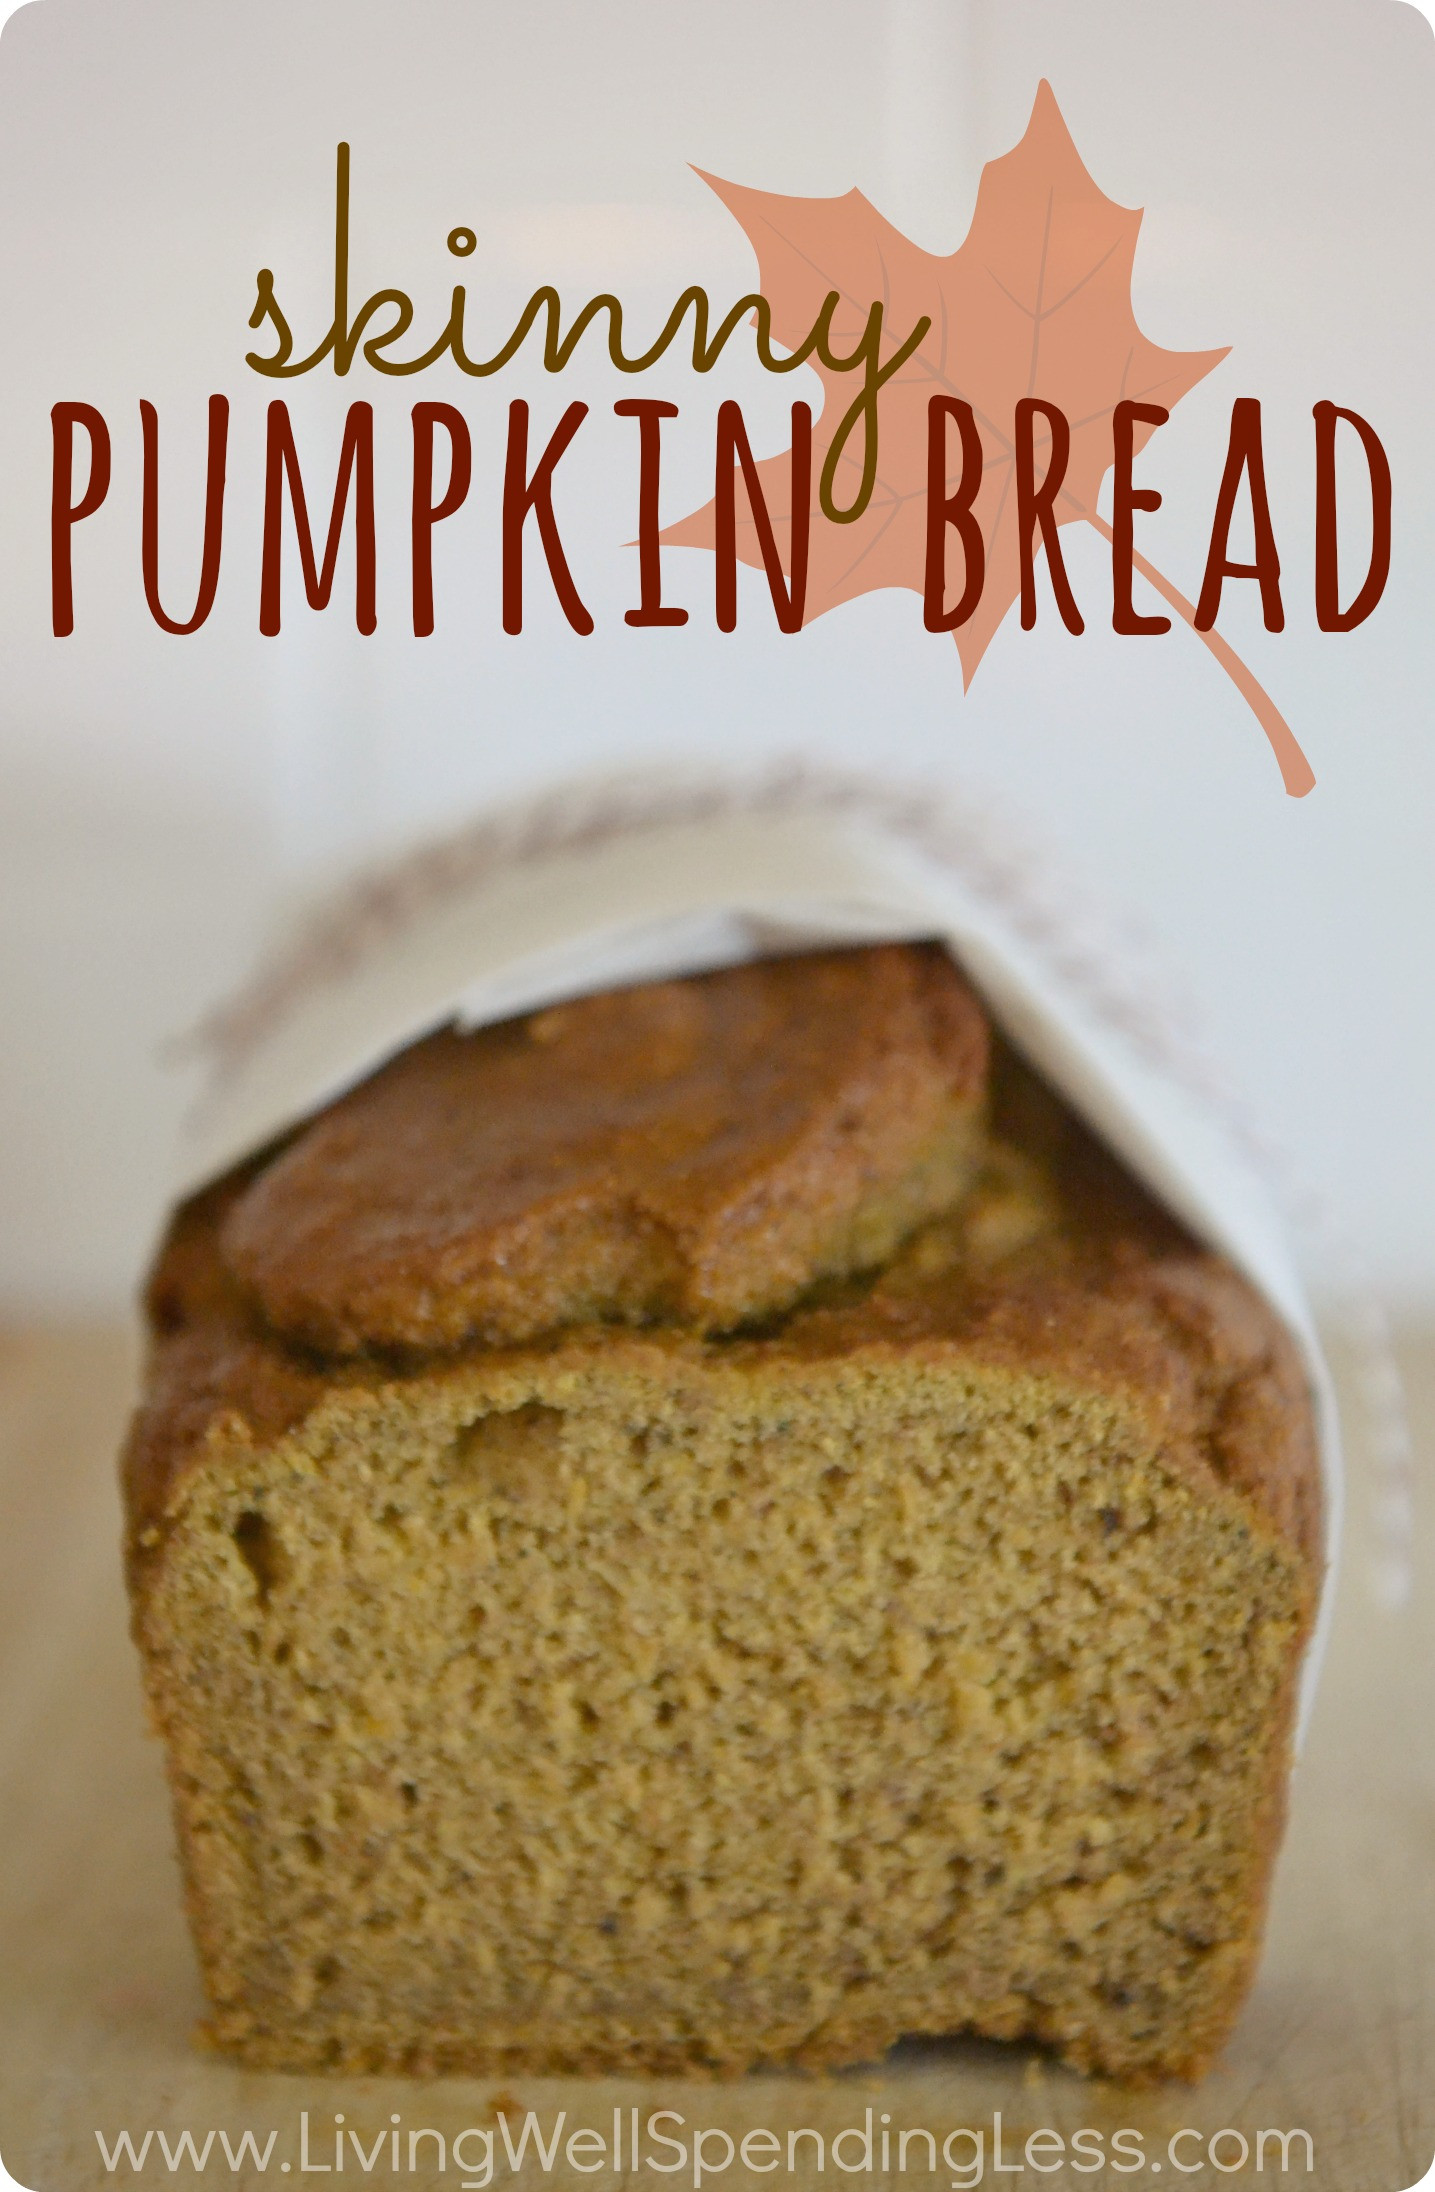 Skinny Pumpkin Bread. Oh my goodness, this bread is so moist & amazing